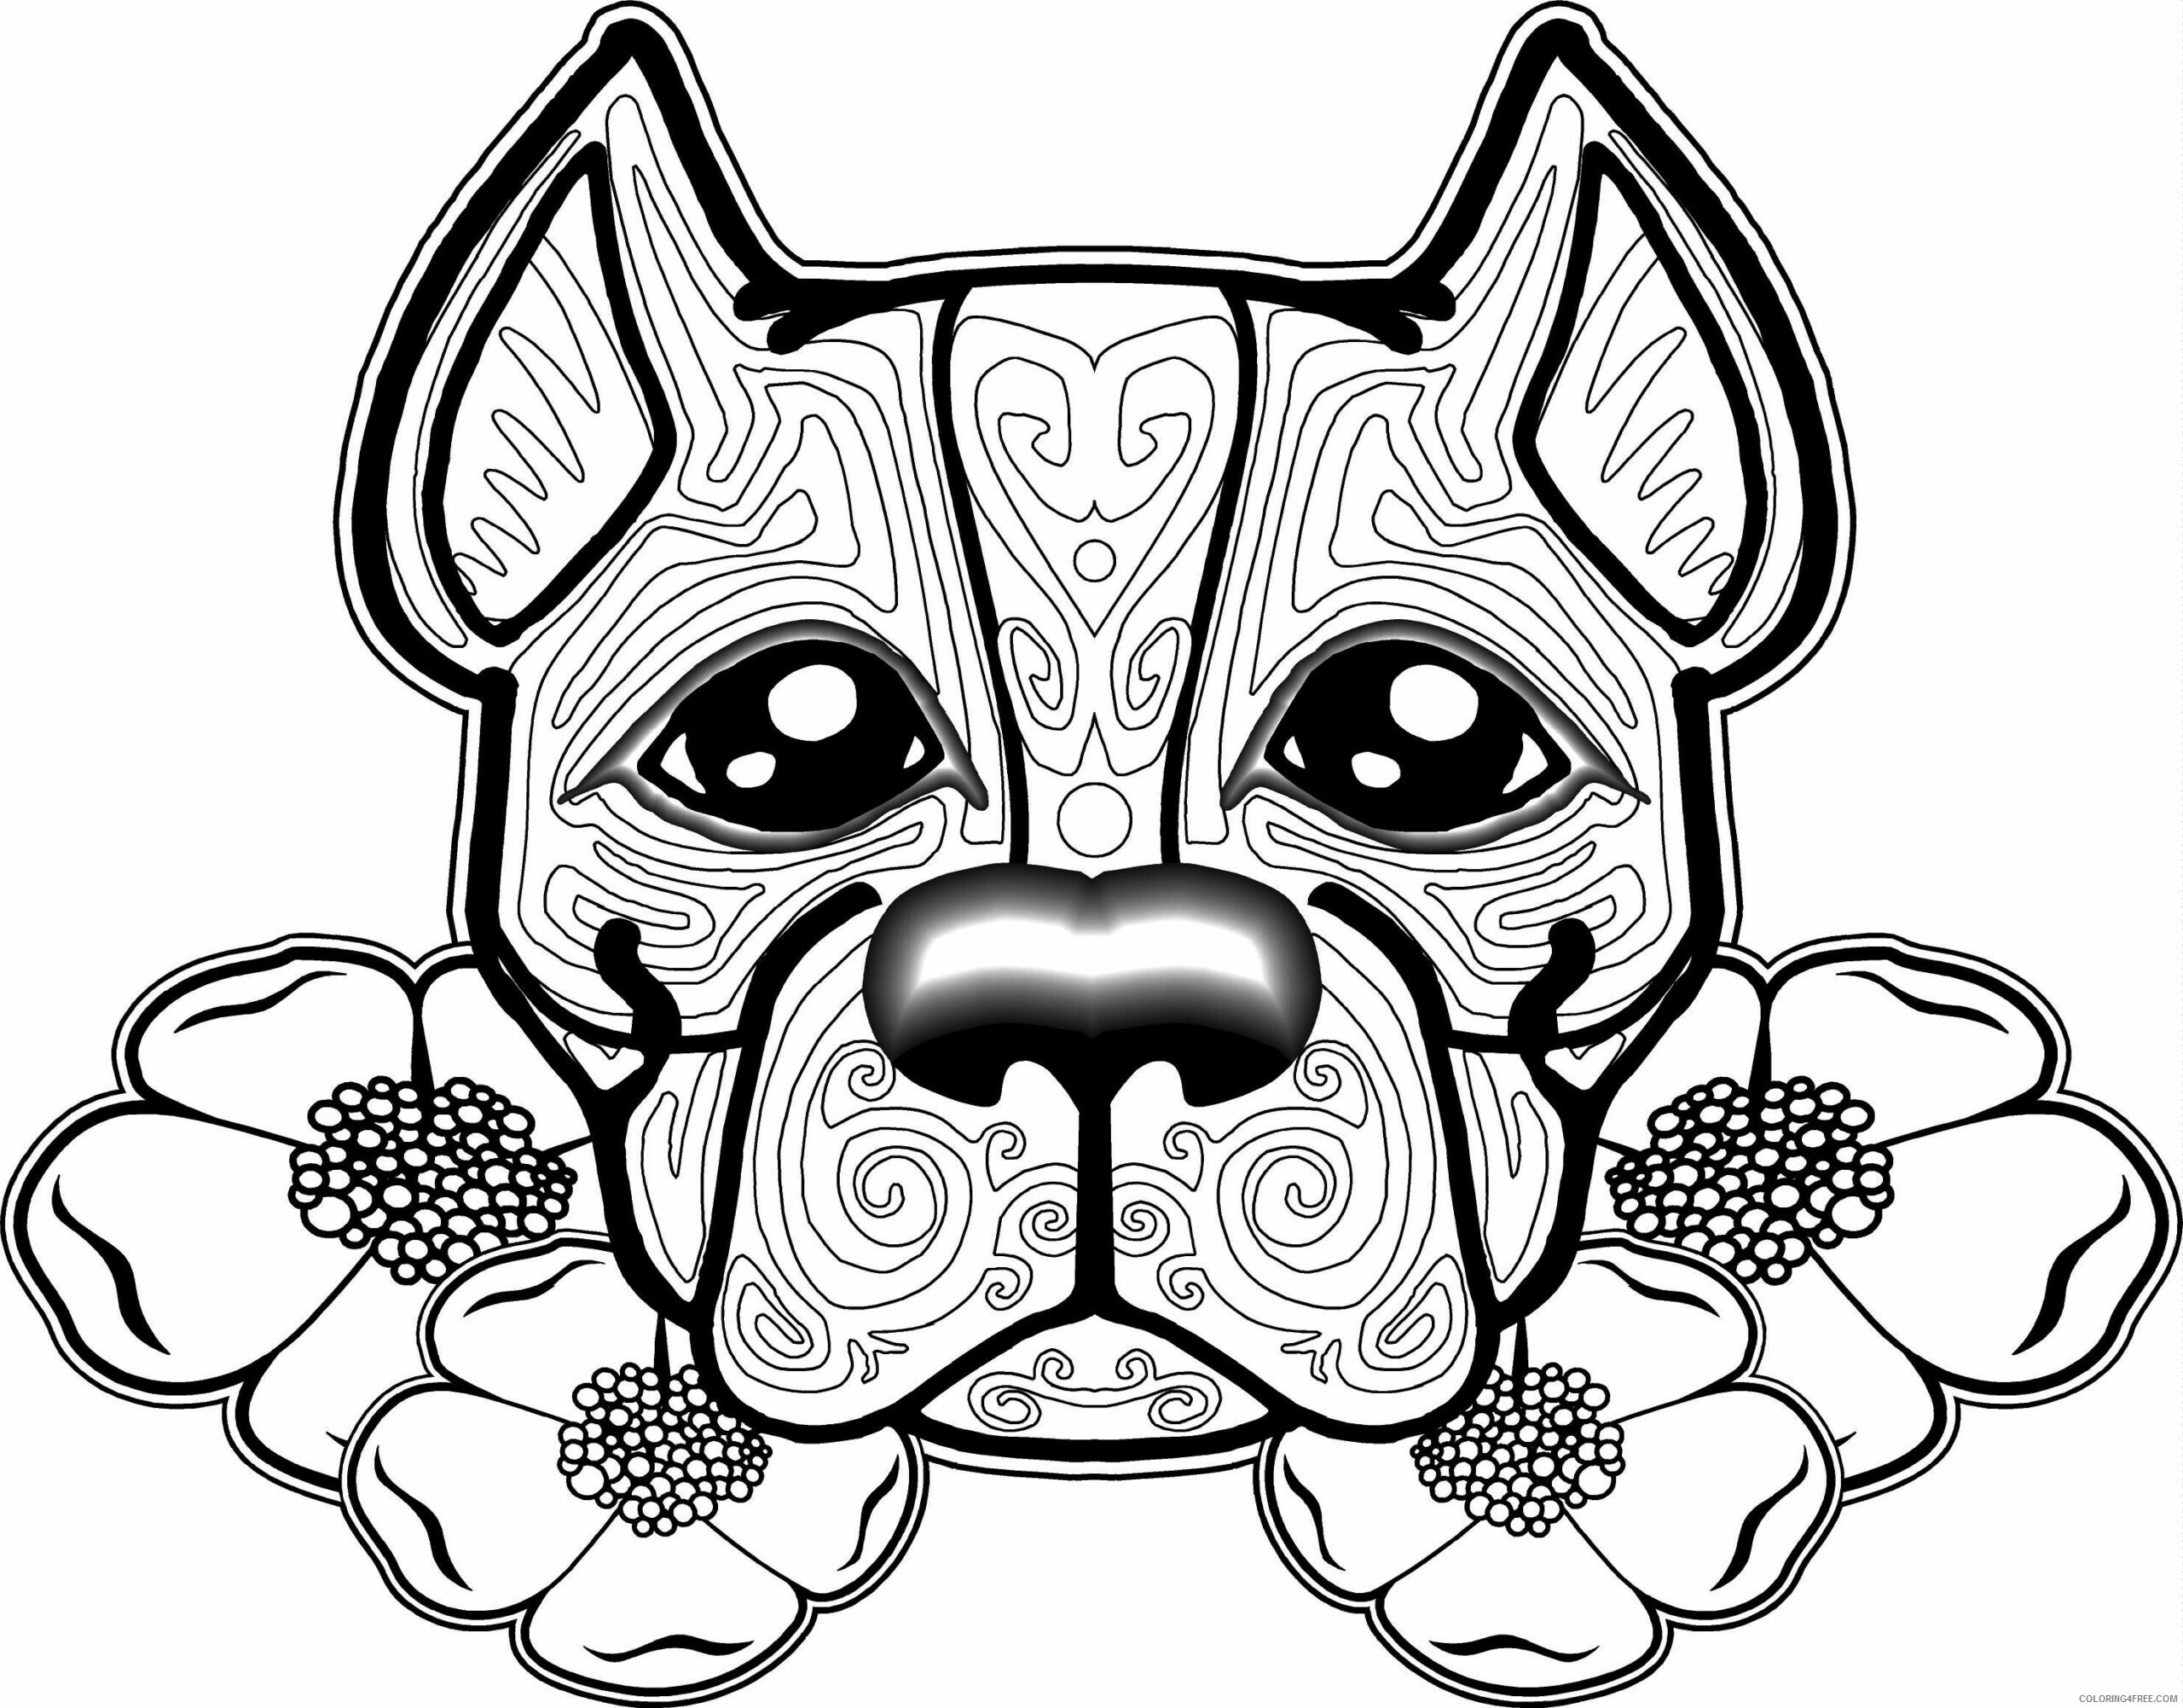 Adult Dog Coloring Pages Dog for Adults 2 Printable 2020 228 Coloring4free